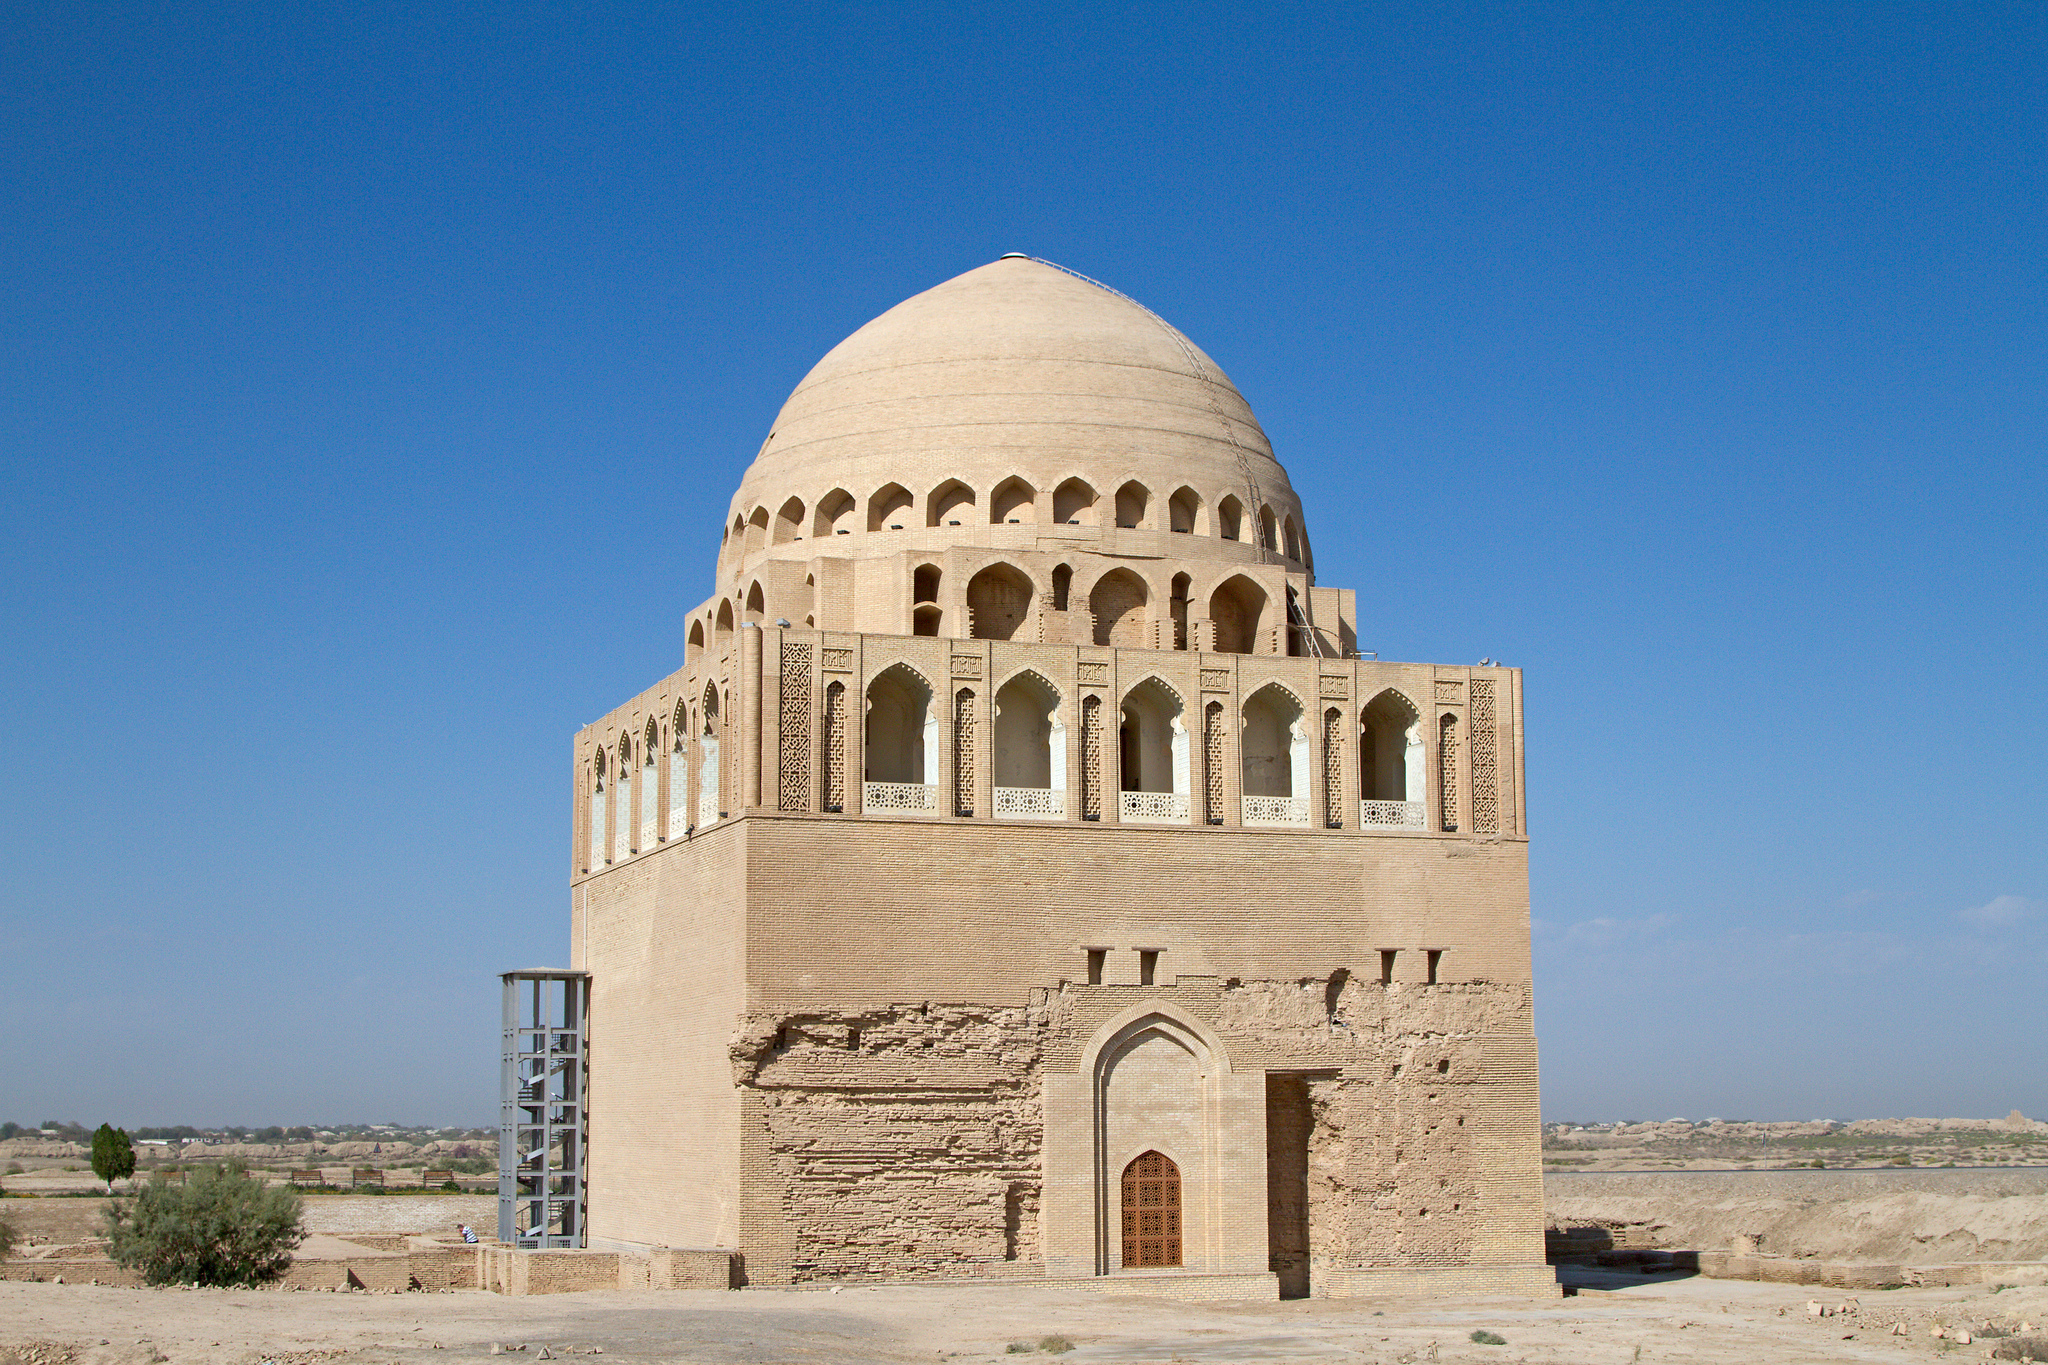 Sultan Eagle Silk Mausoleum in Merv